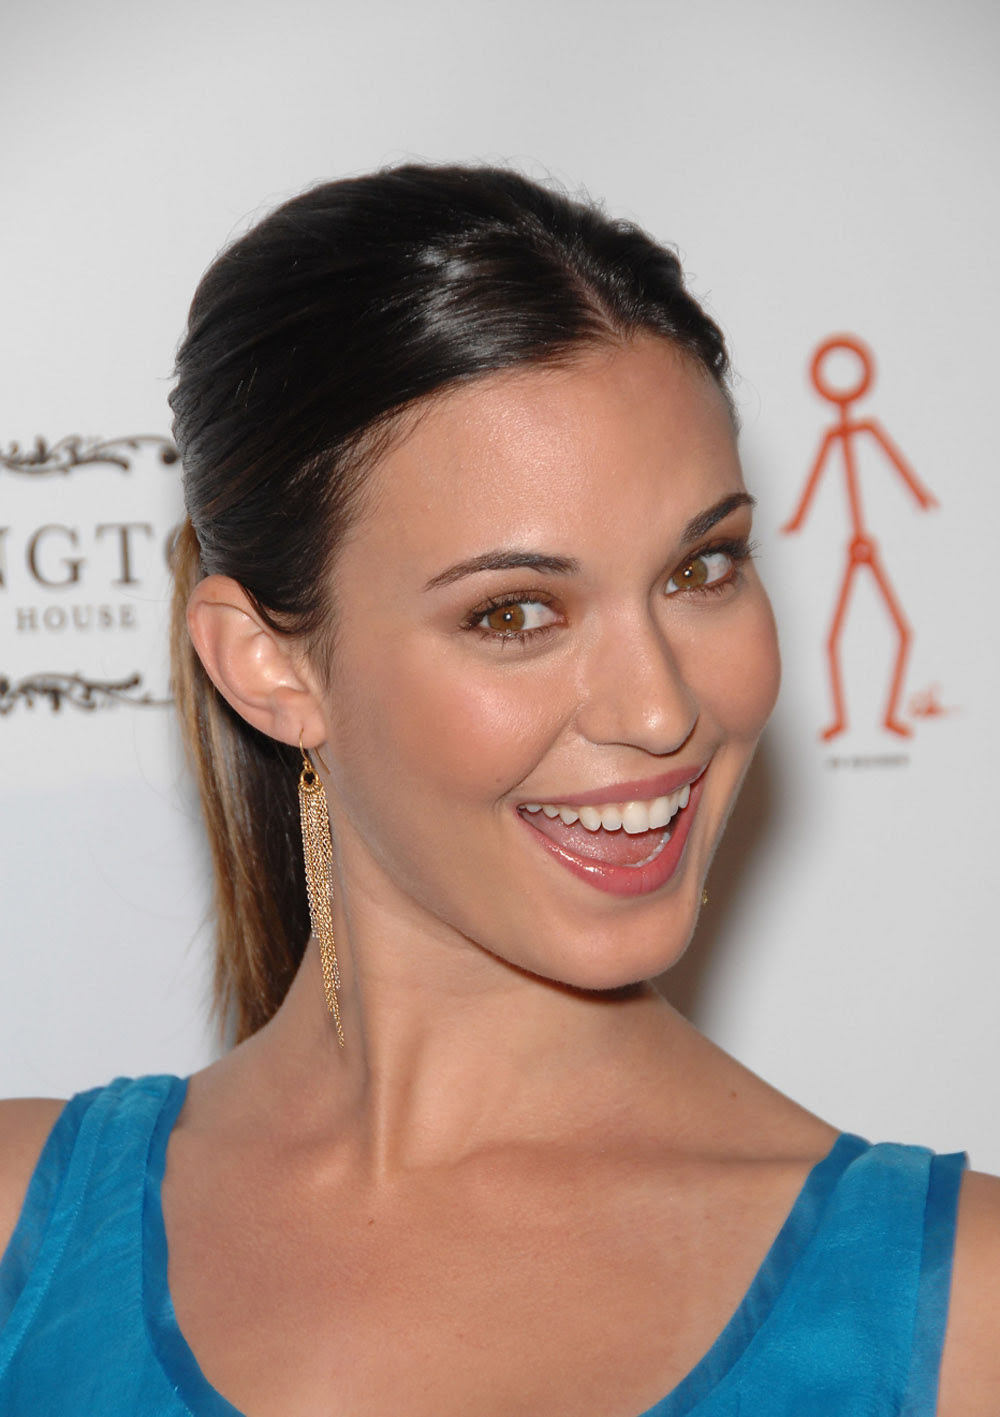 Wallpapers Wide Beauty: Odette Annable - Images Actress